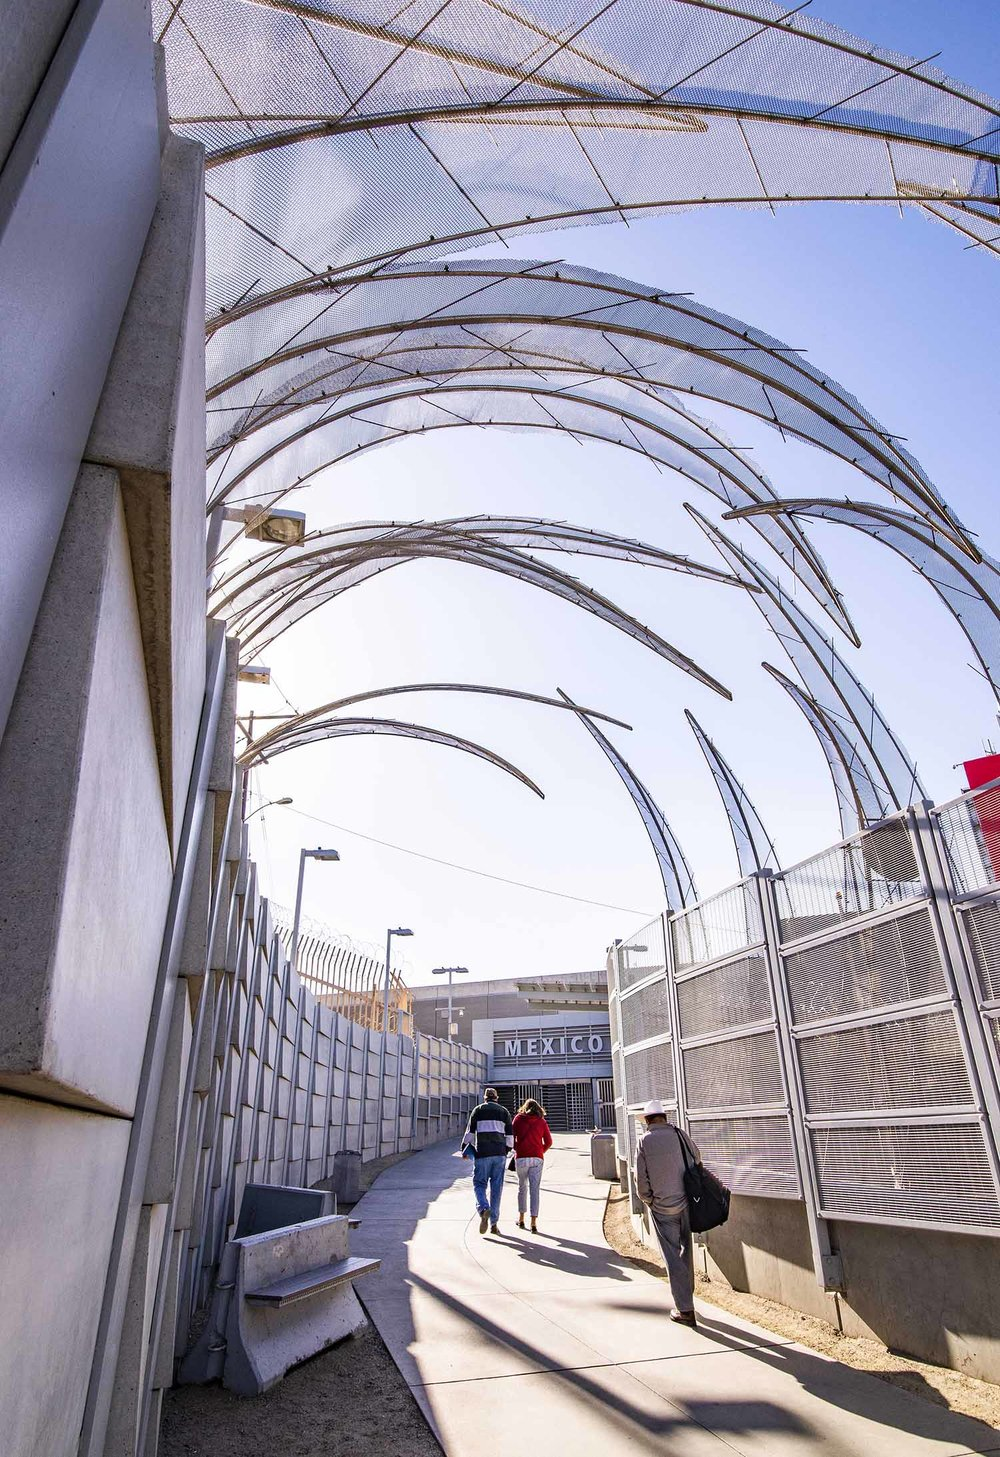 San-Ysidro-border-walls-decorative-barbed-wire-pedestrians.jpg